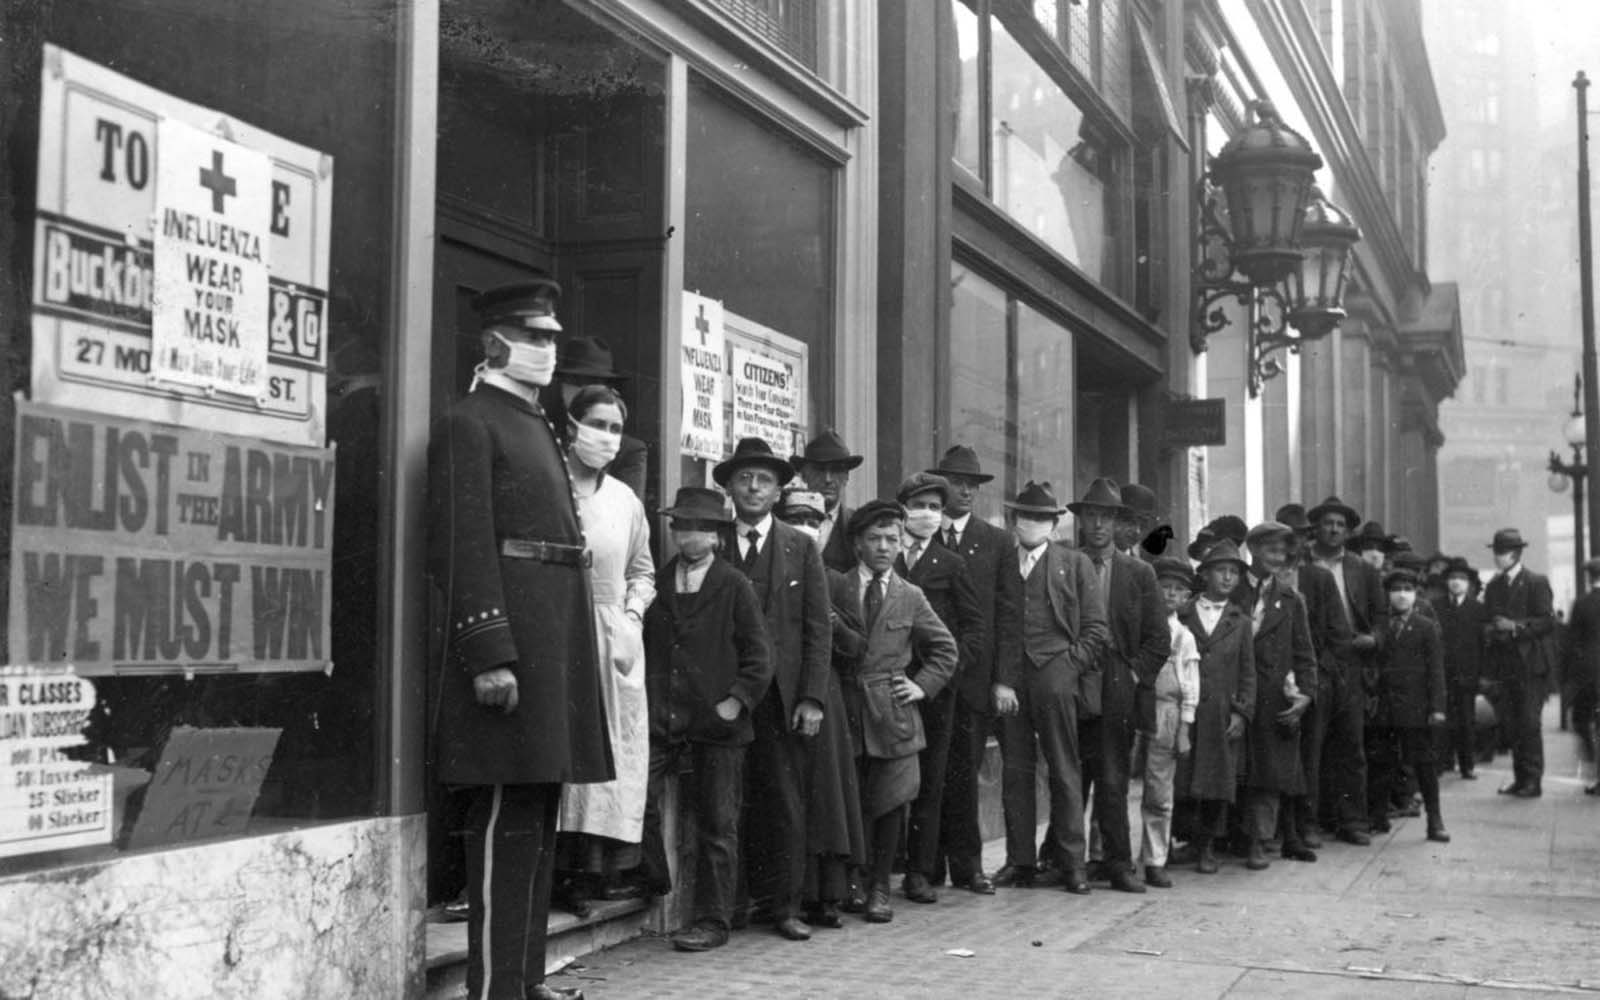 eople wait in line to get flu masks on Montgomery Street in San Francisco in 1918.